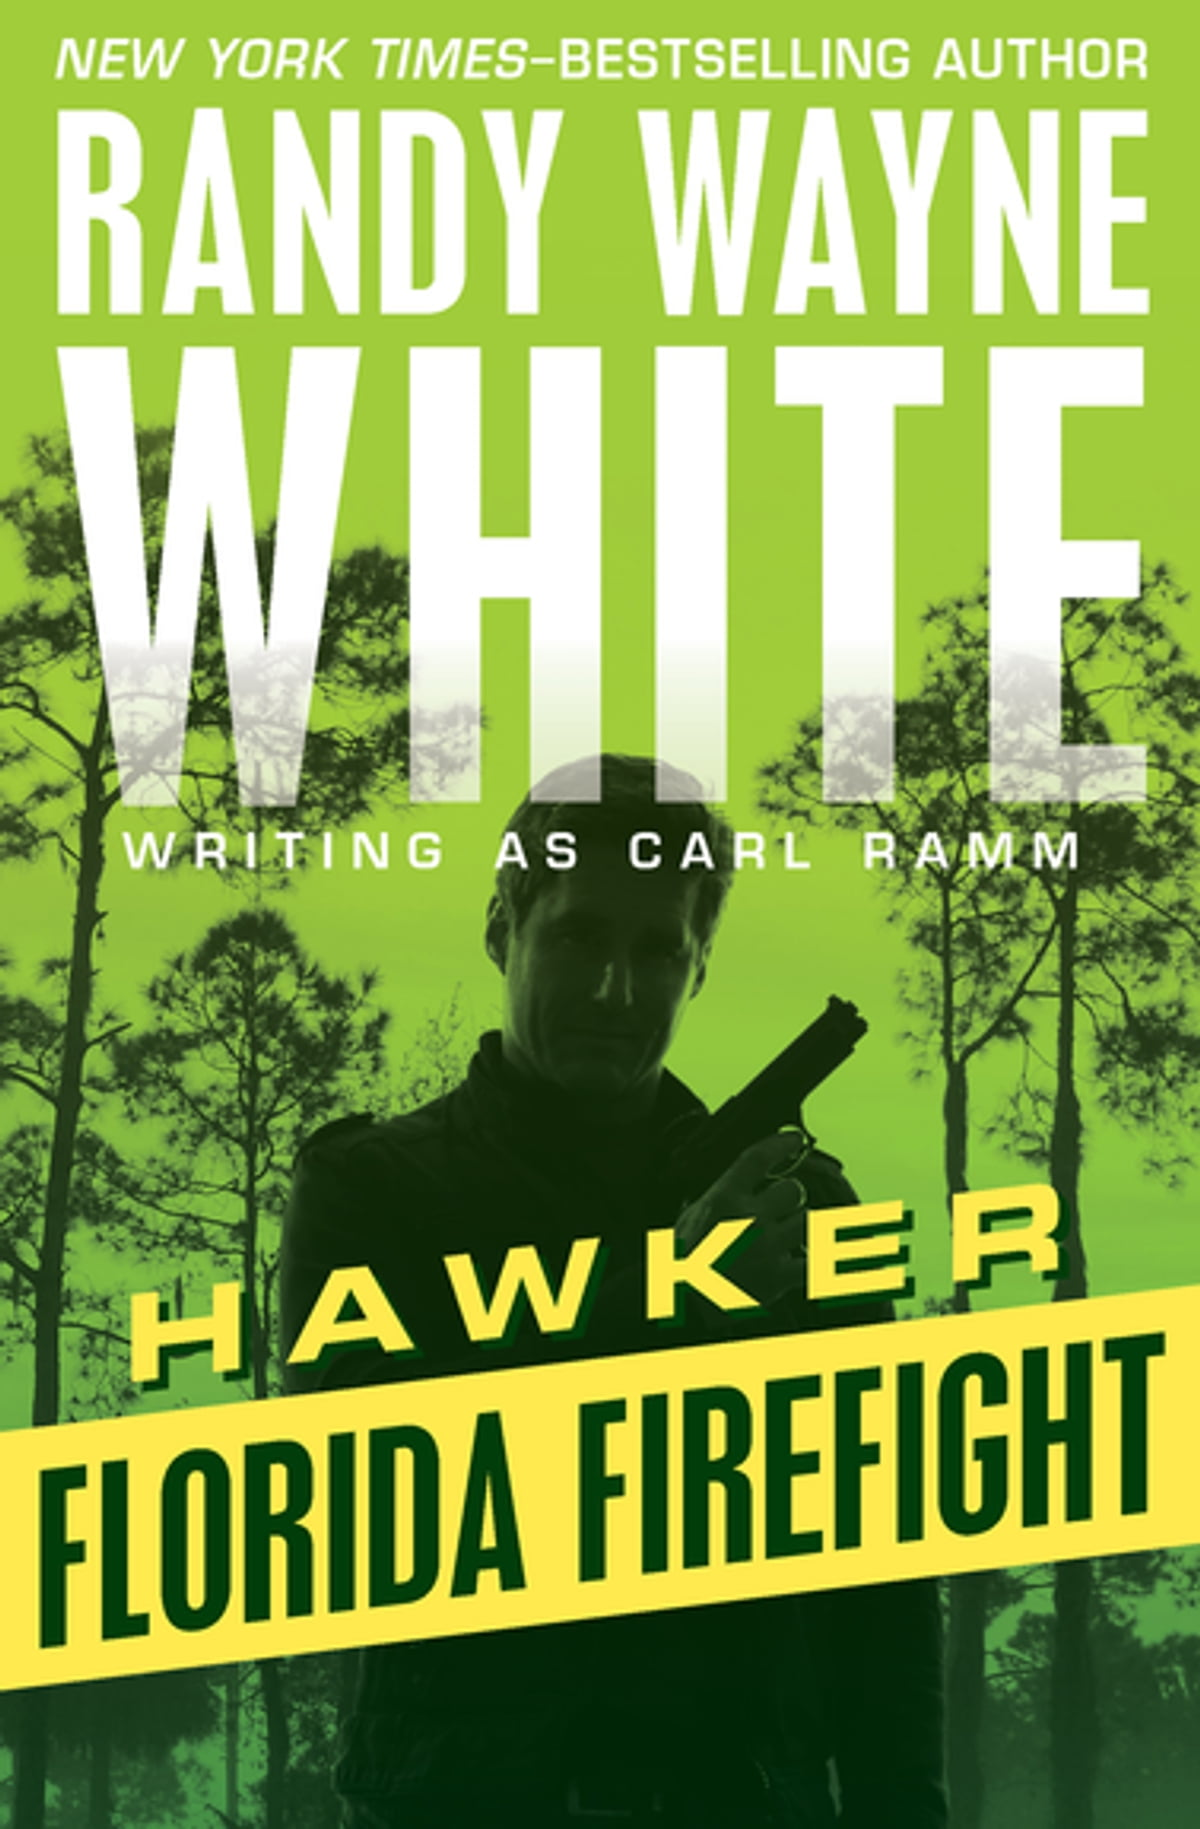 Florida Firefight eBook by Randy Wayne White - 9781504024501 | Rakuten Kobo